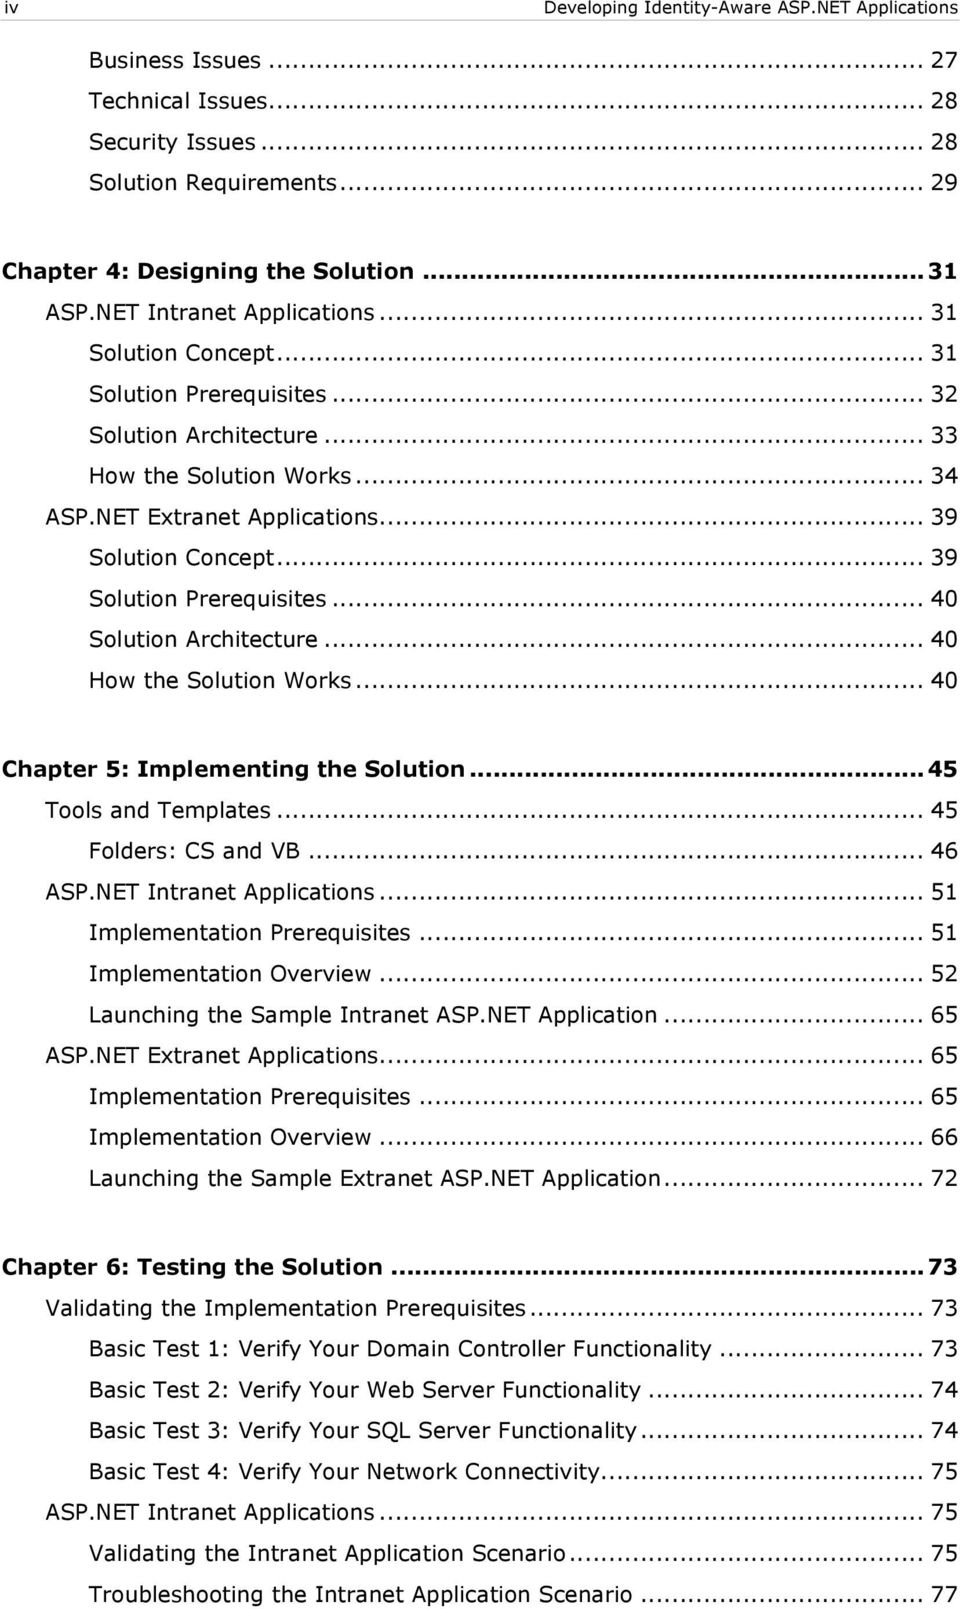 .. 39 Solution Prerequisites... 40 Solution Architecture... 40 How the Solution Works... 40 Chapter 5: Implementing the Solution... 45 Tools and Templates... 45 Folders: CS and VB... 46 ASP.